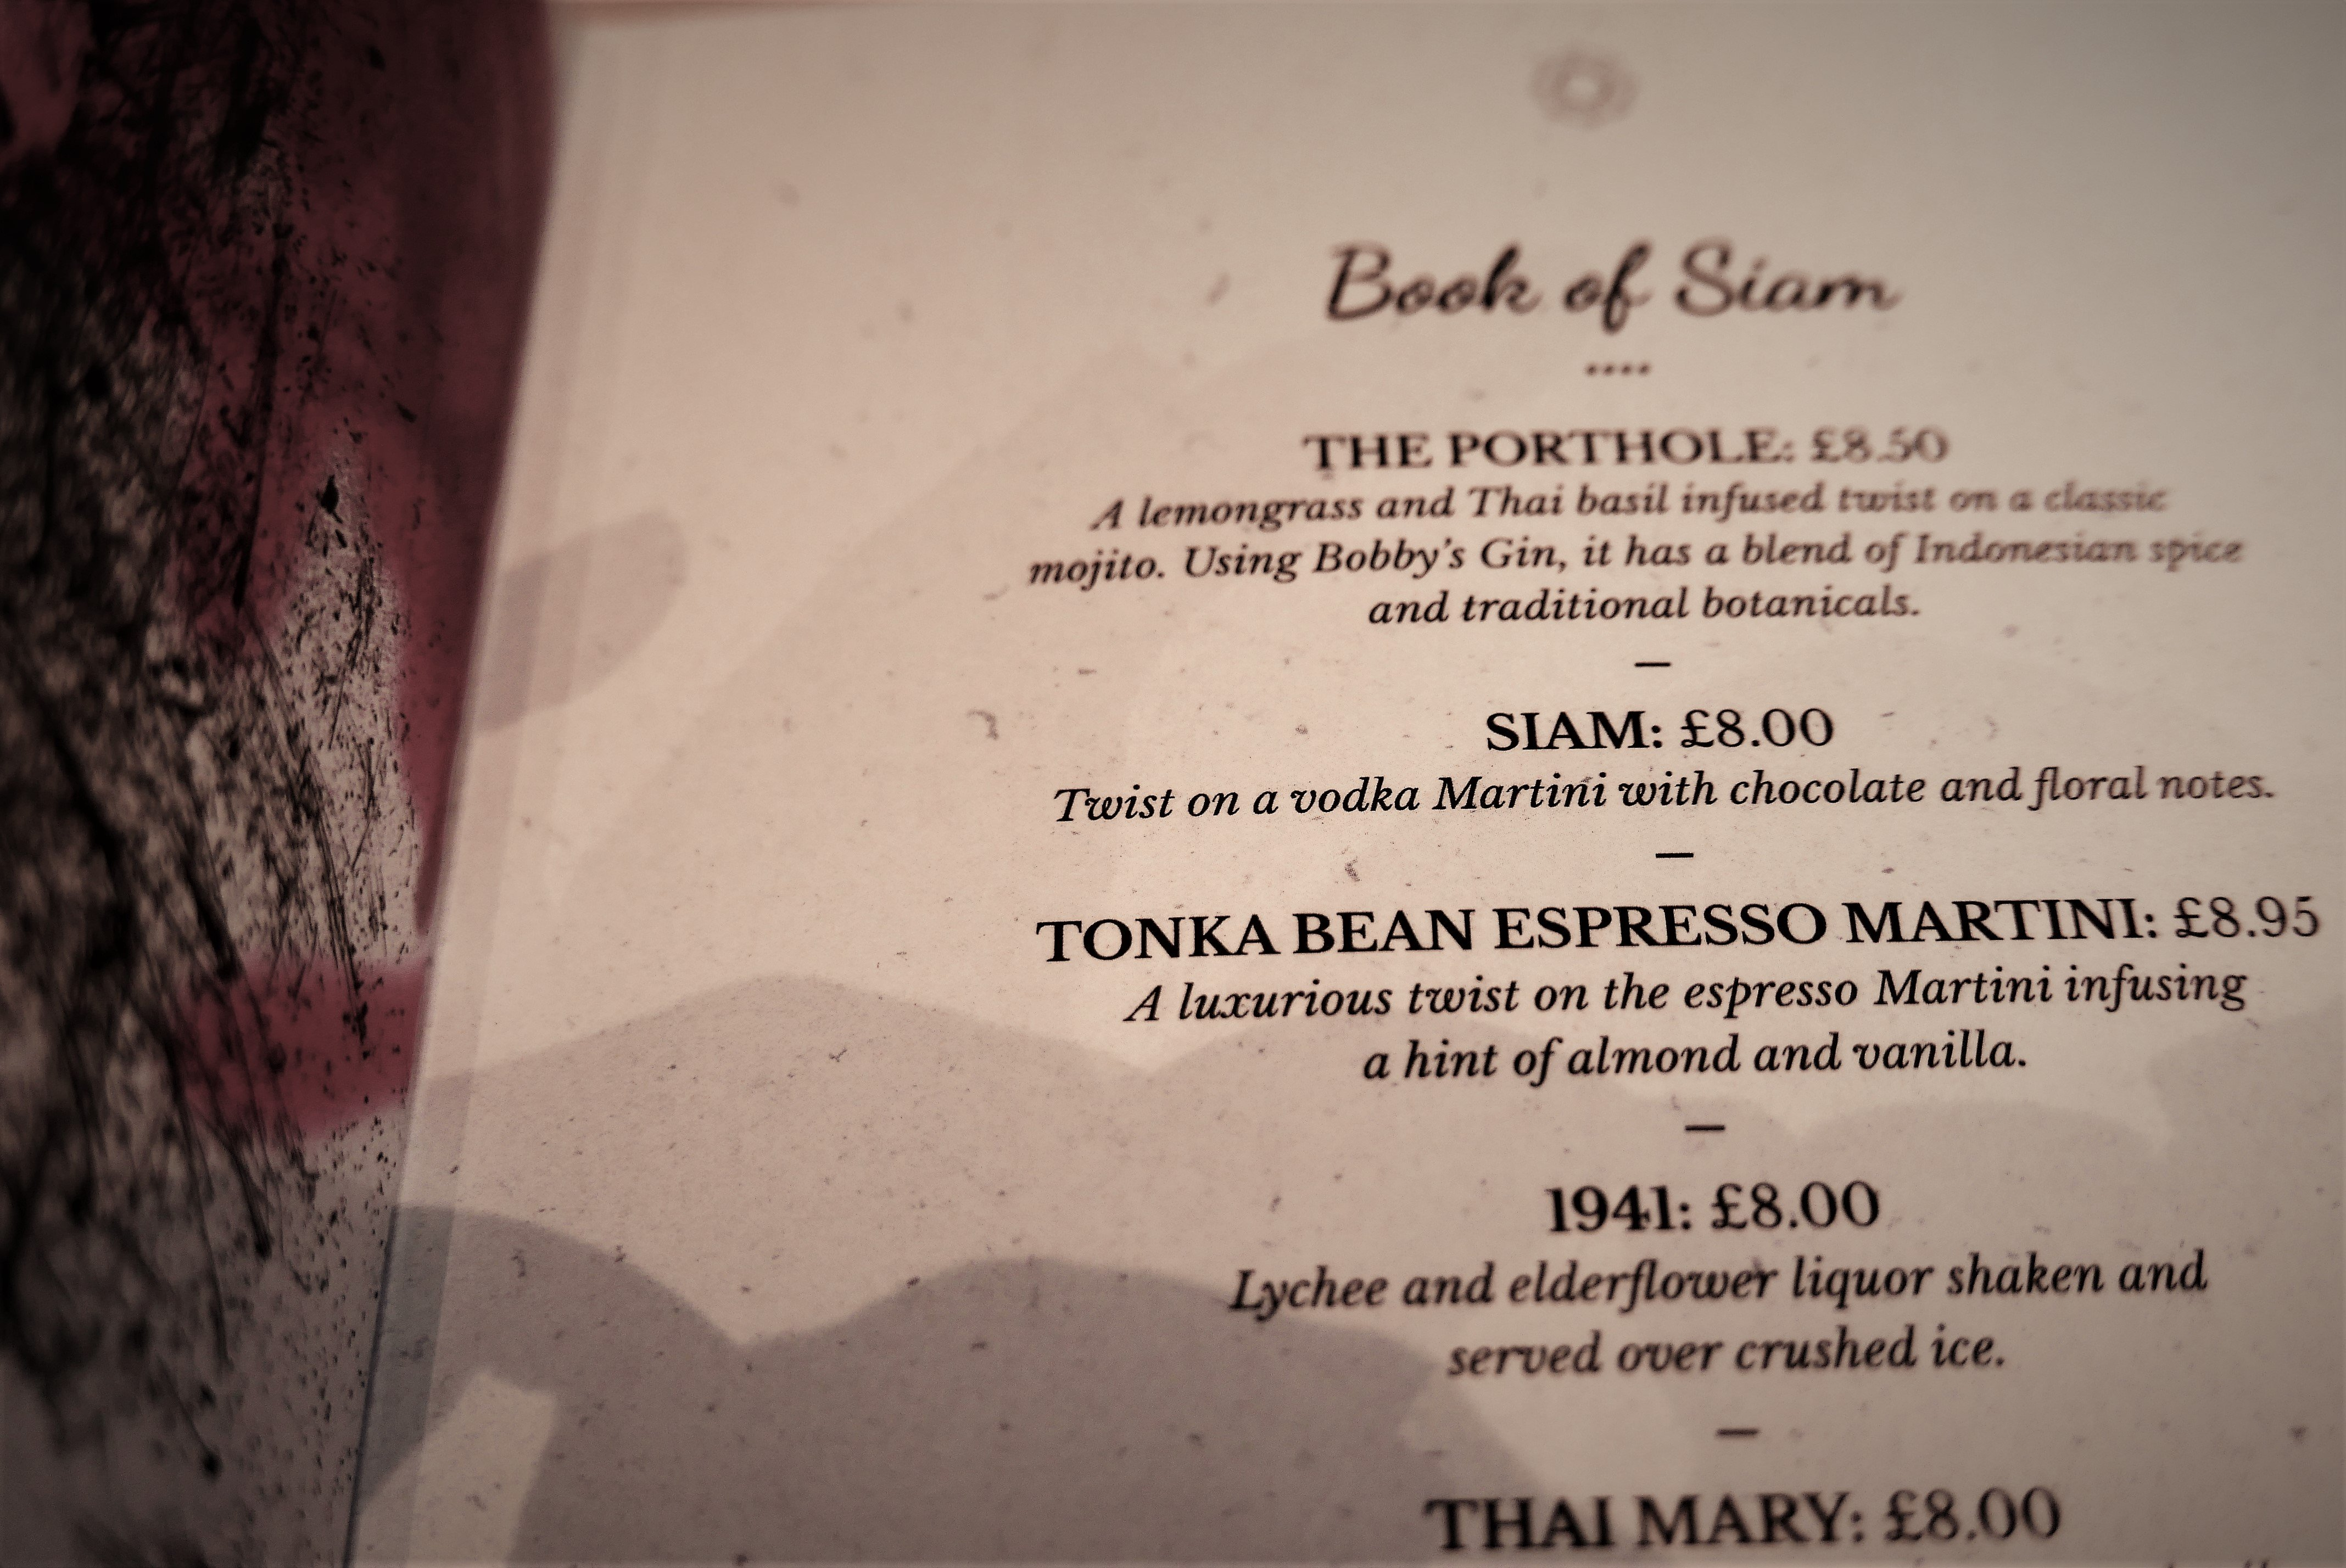 The Cocktail Menu at Siamais